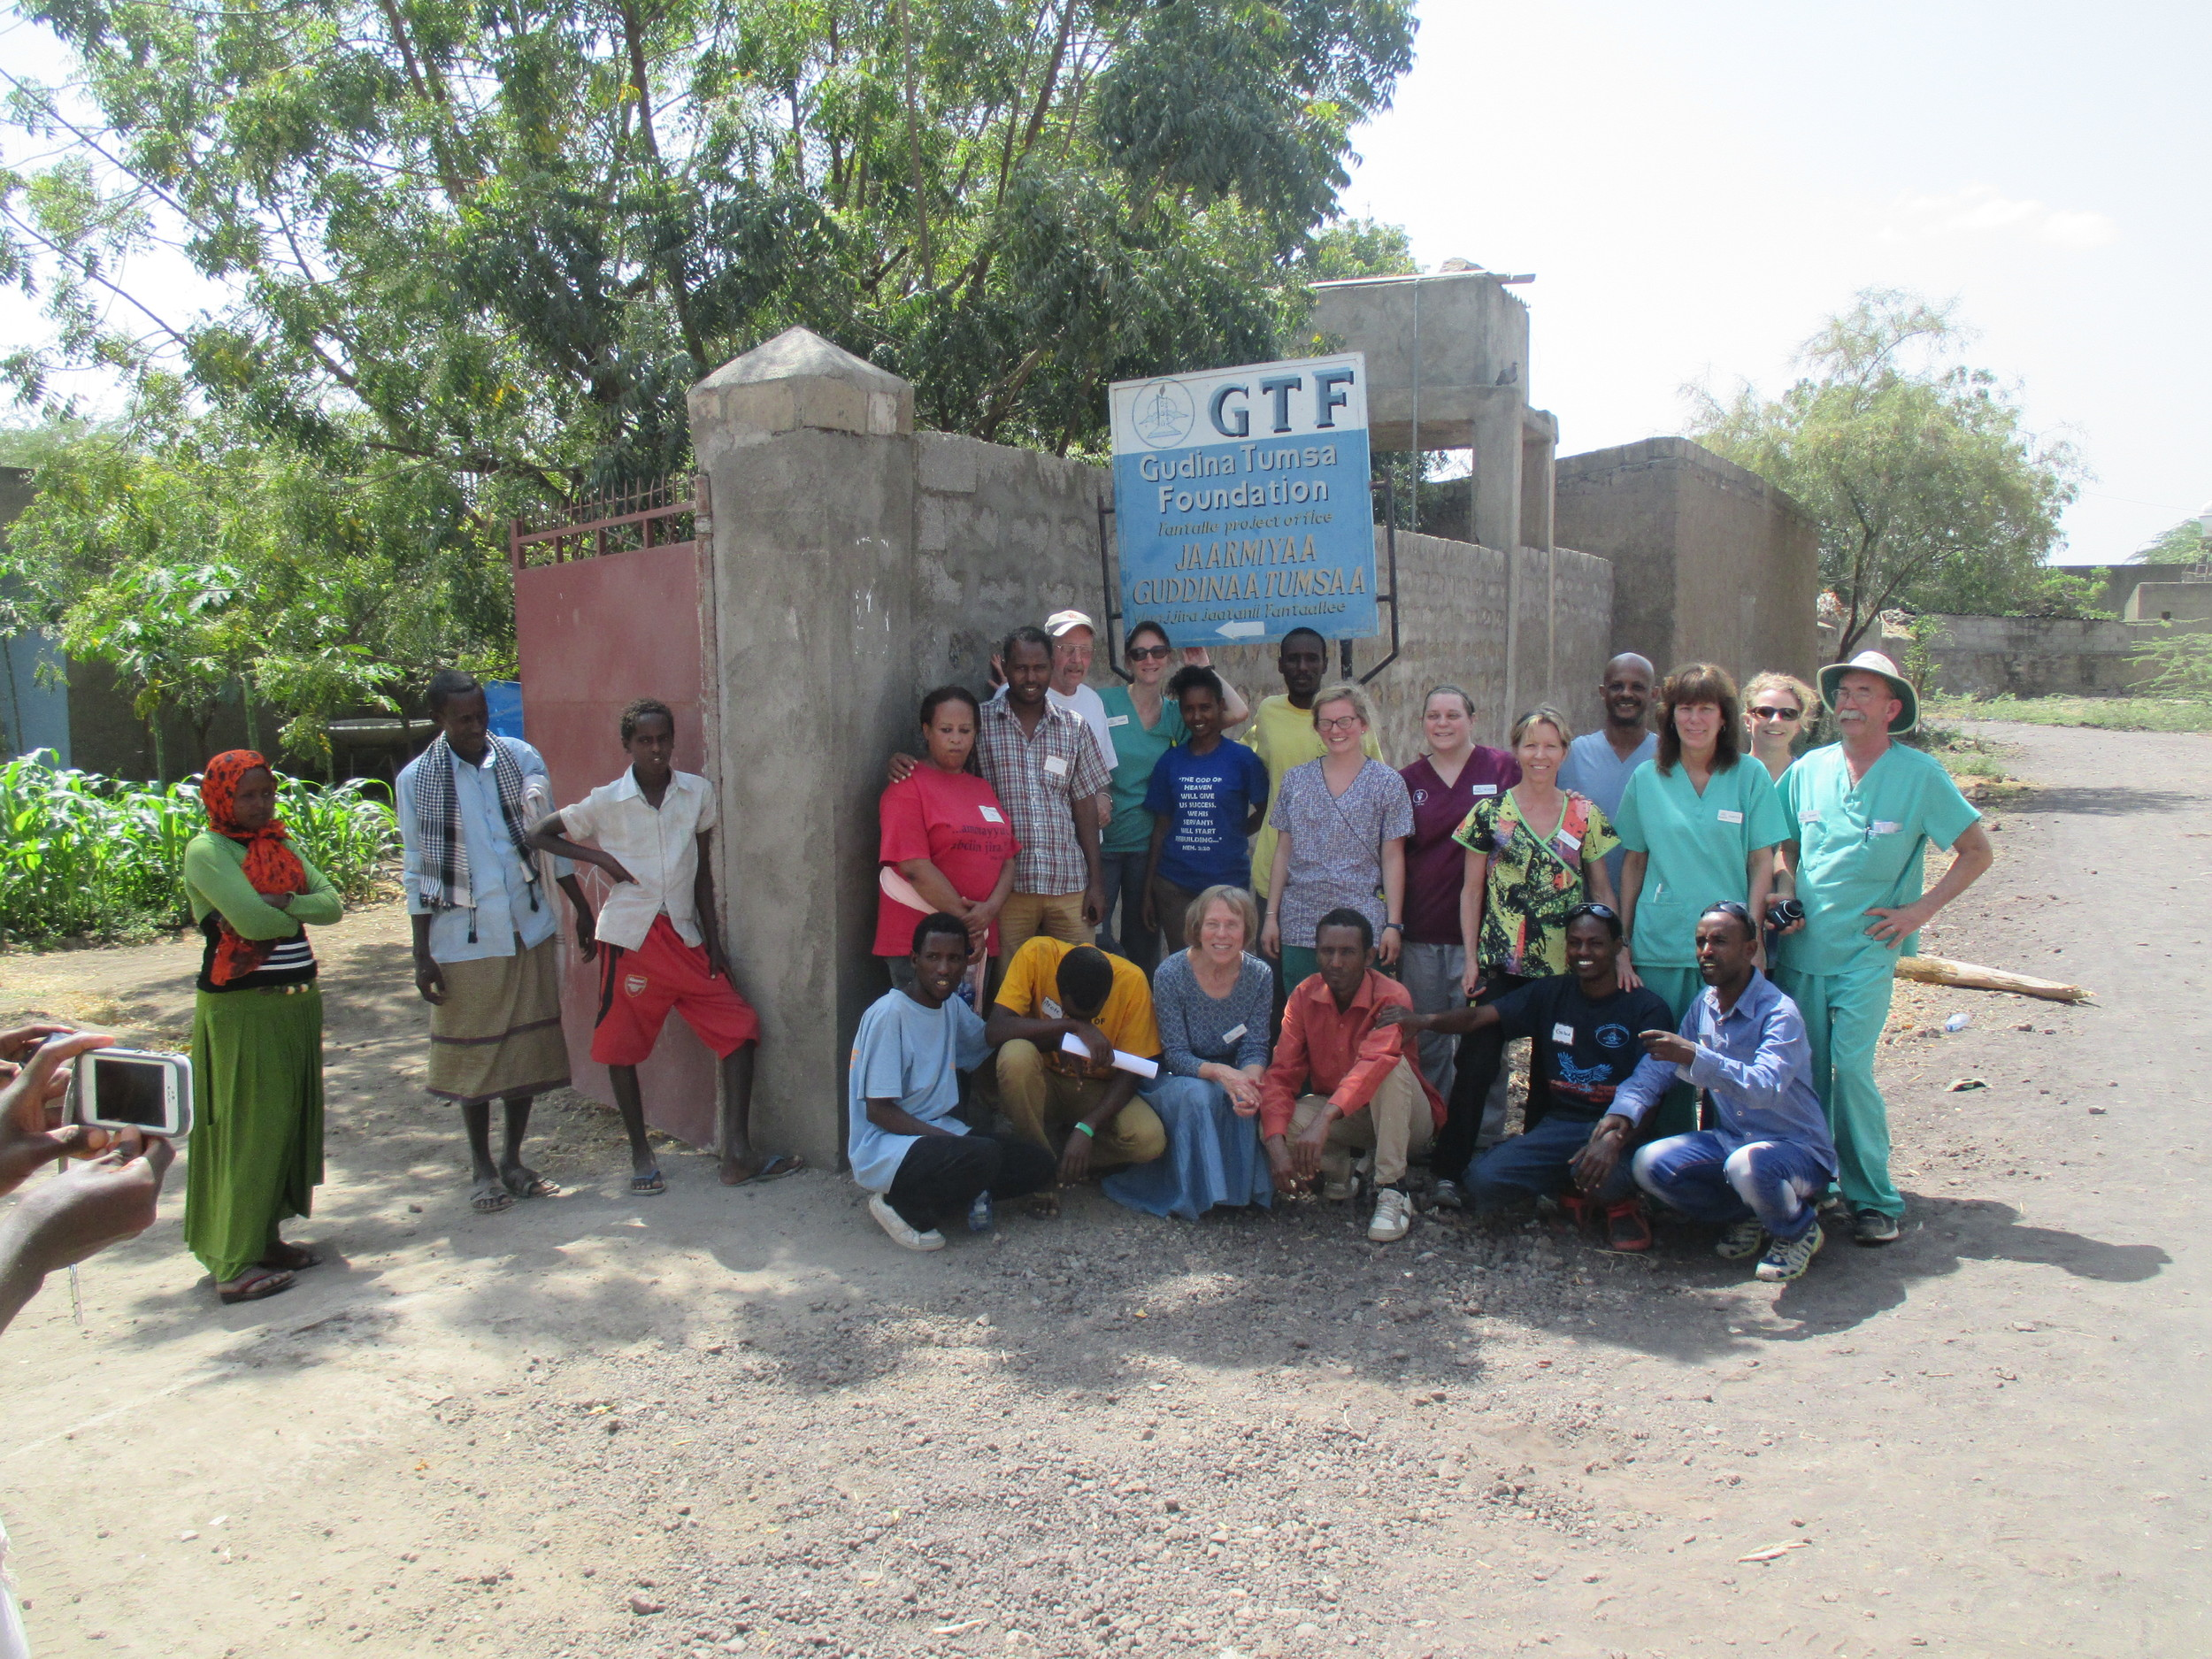 GTF-Ethiopia and GTF-US Team members at the GTF Metahara location